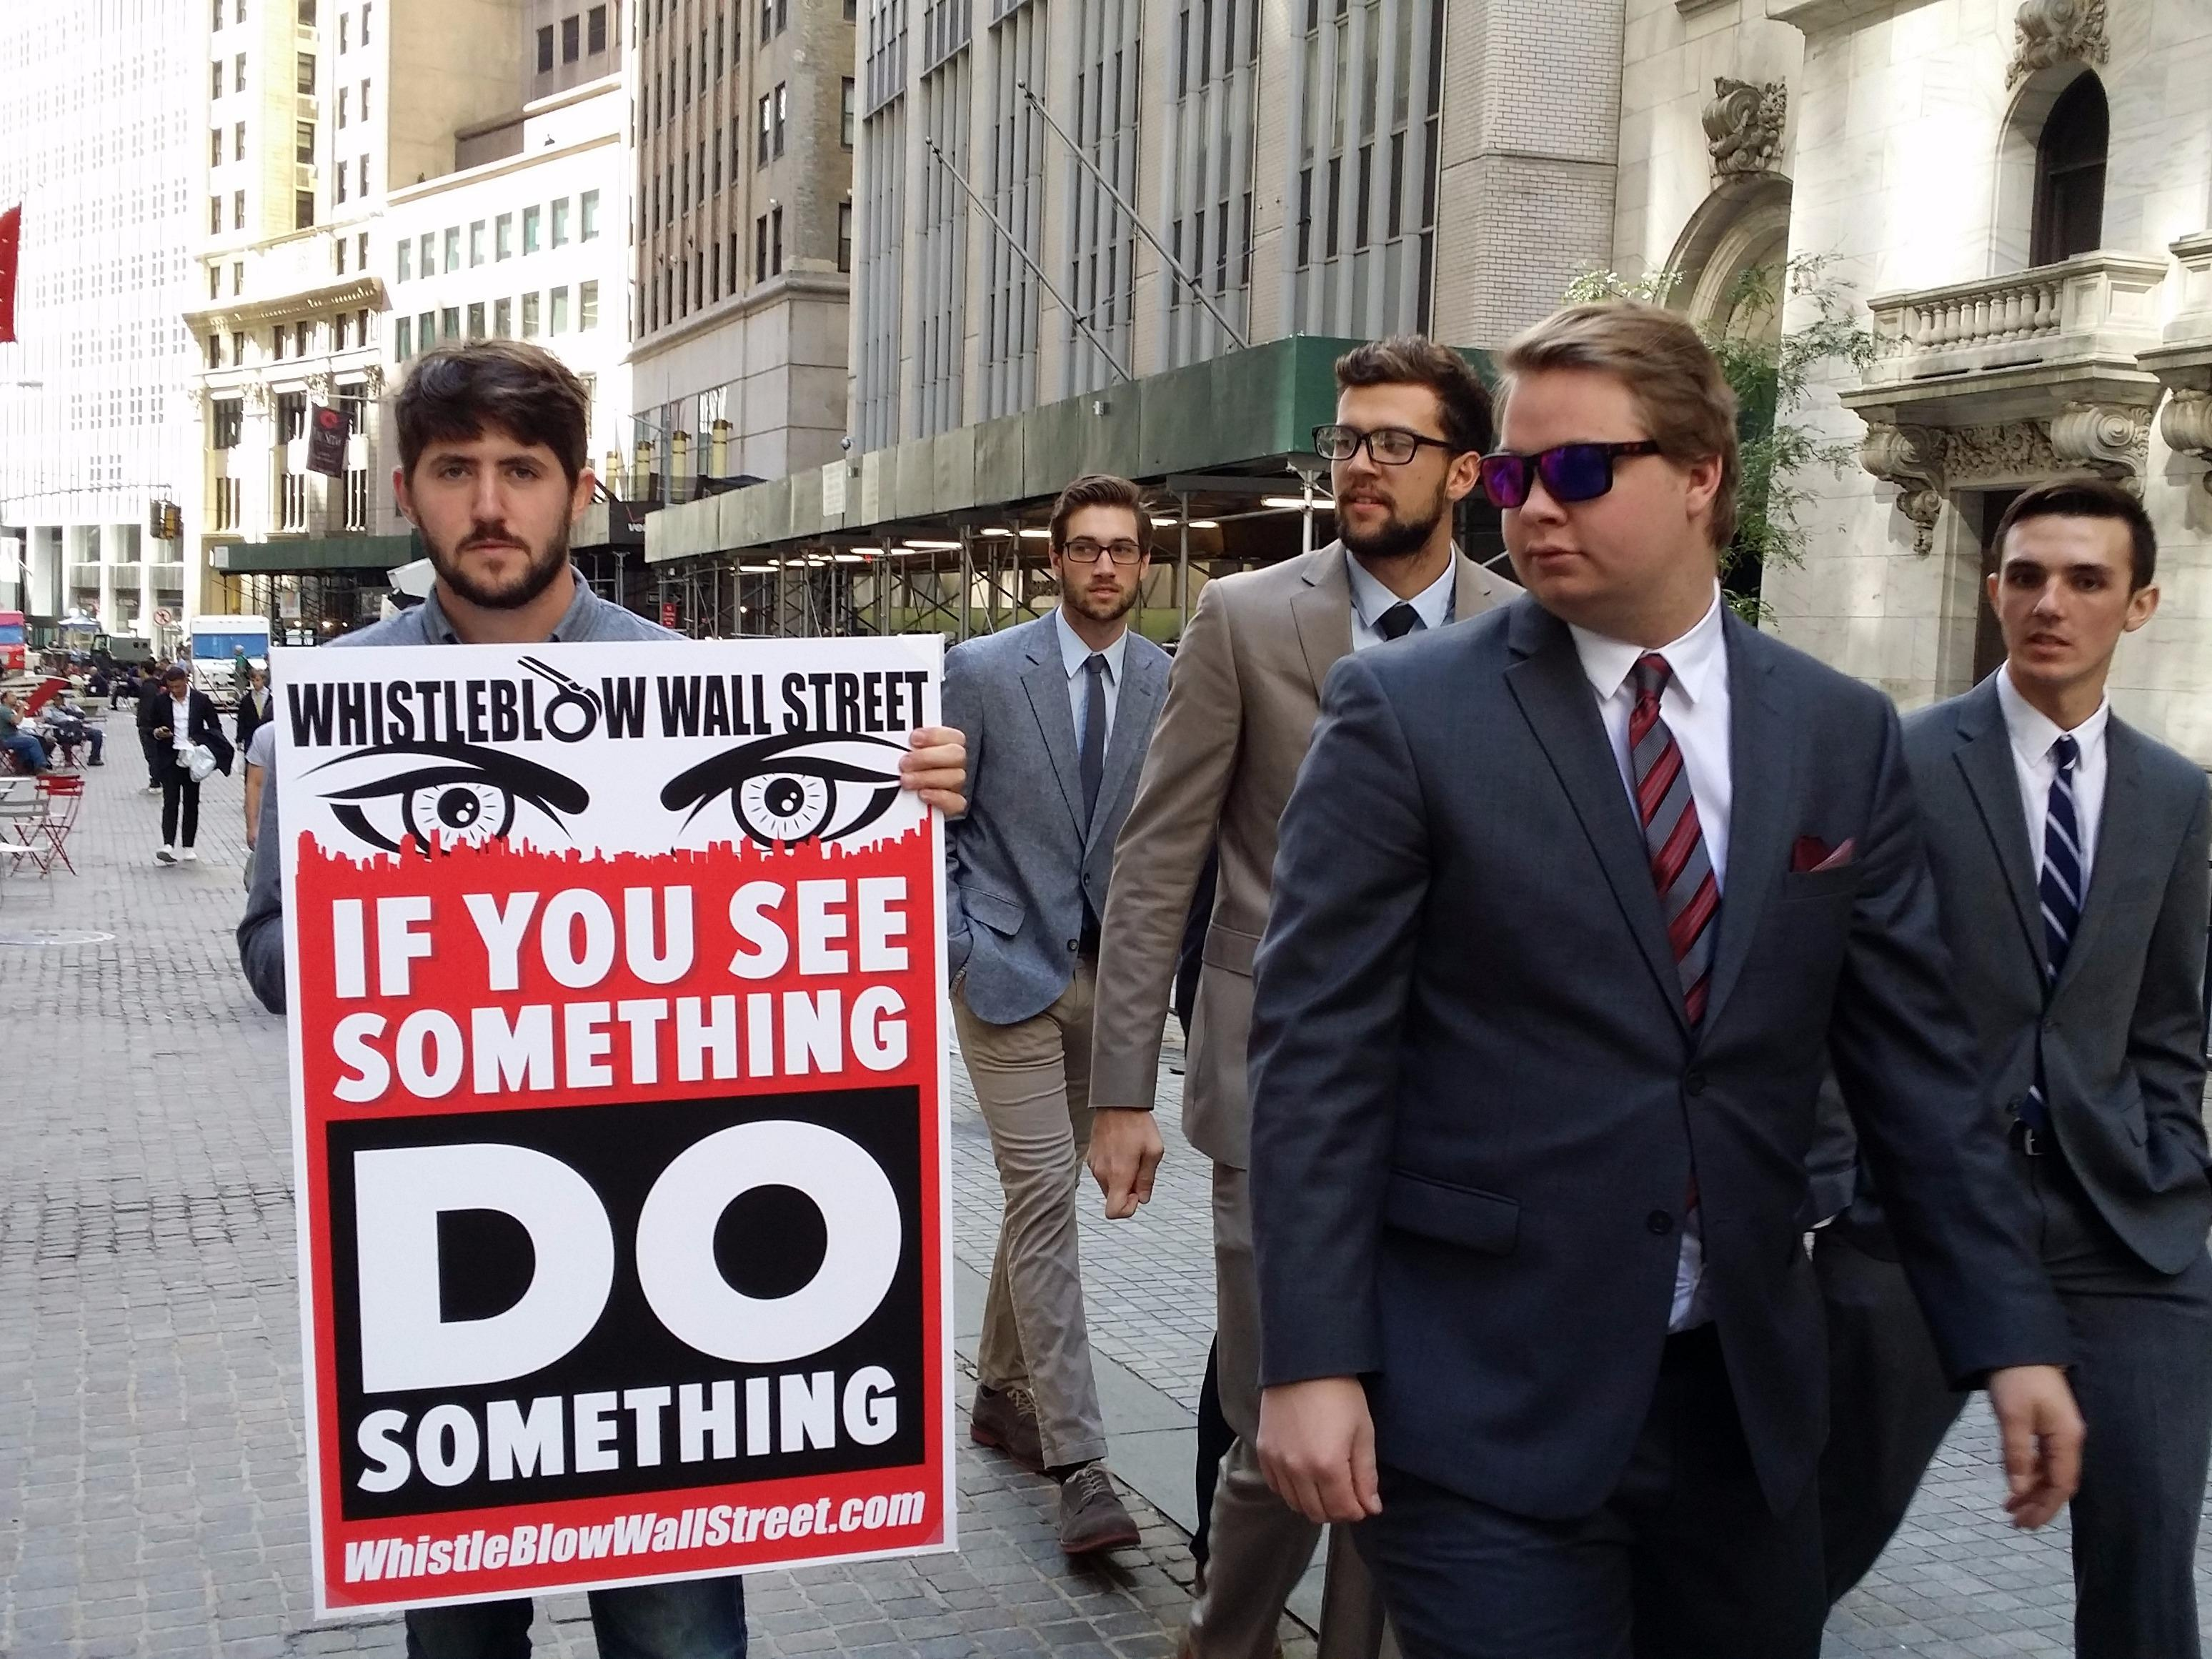 There are now ads for Wall Street whistleblowers